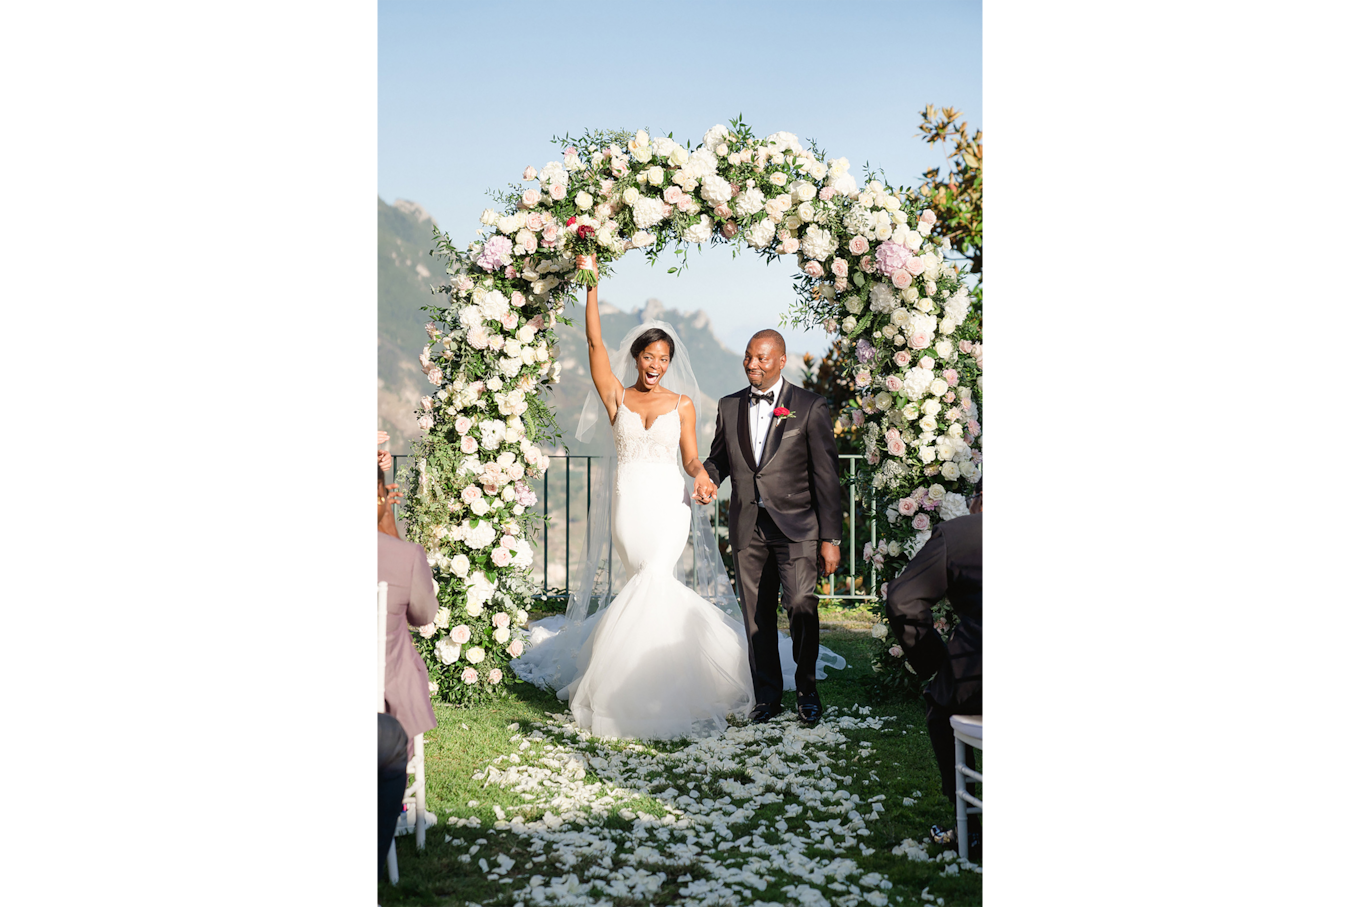 sandra aberg sony alpha 7r3 grooms stand in front of a flower arch and bride raises her bouquet